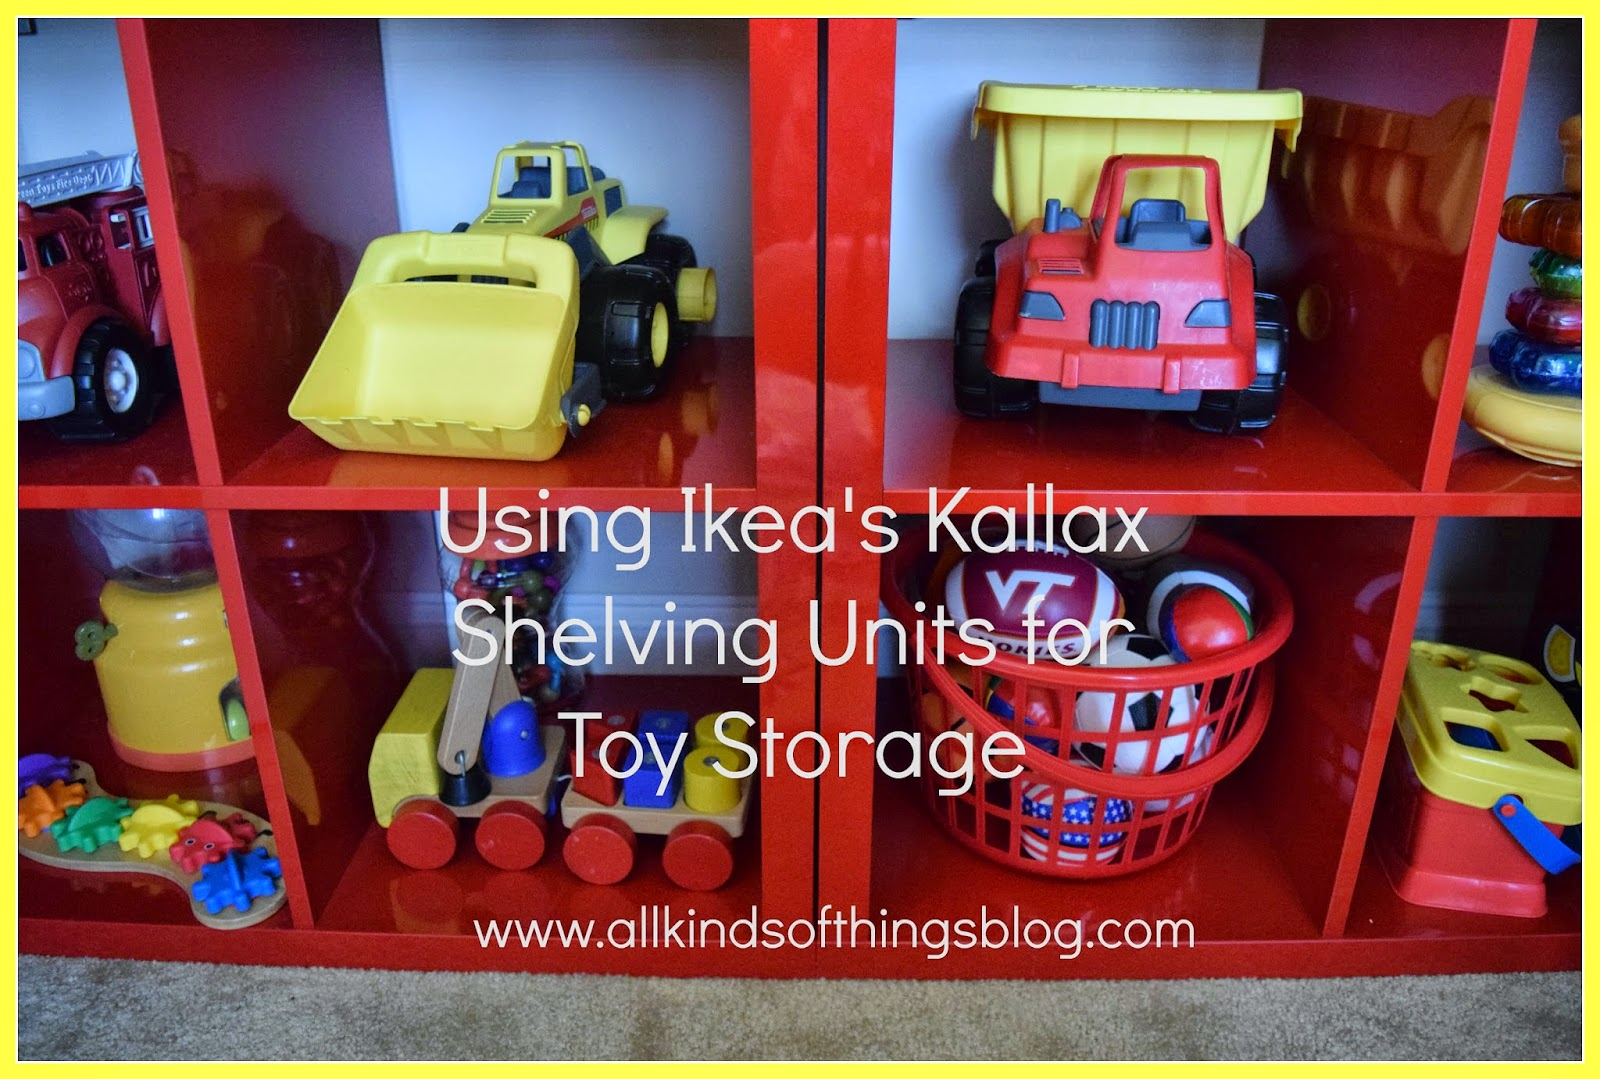 Using Ikea's Kallax Shelving Units for Toy Storage